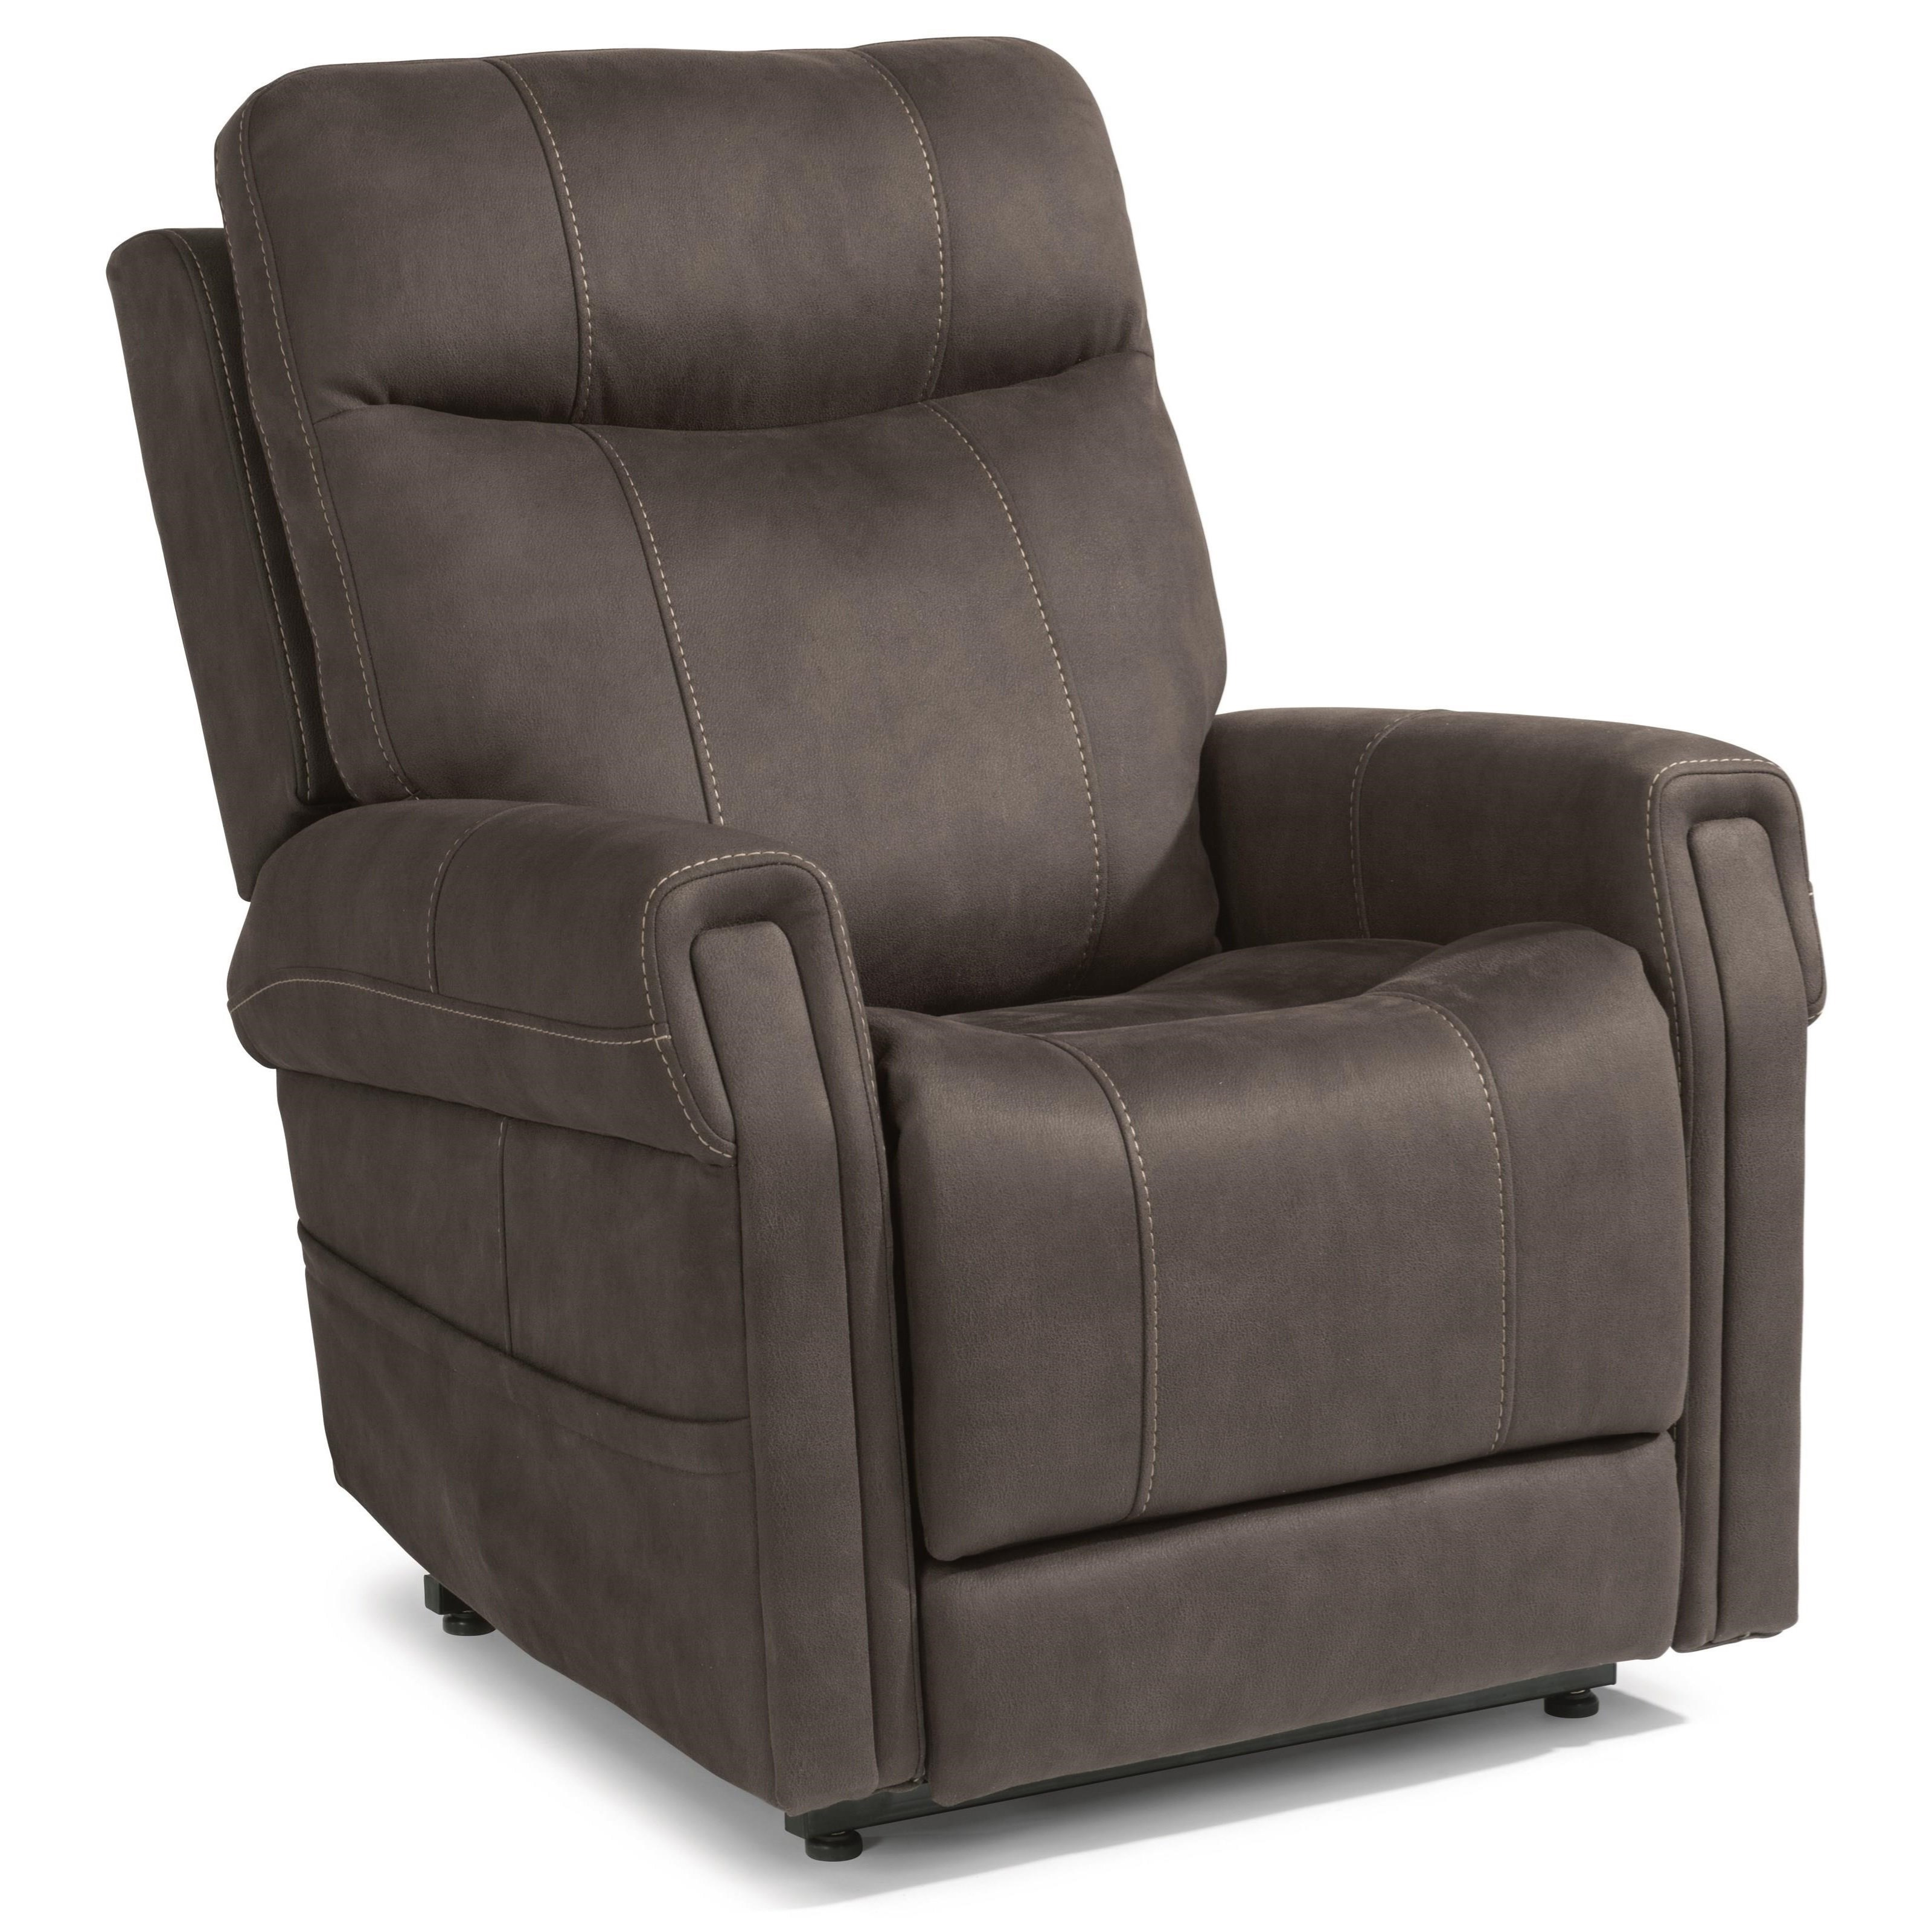 Latitudes - Jenkins Power Lift Recliner with Right-Hand Control by Flexsteel at Zak's Home